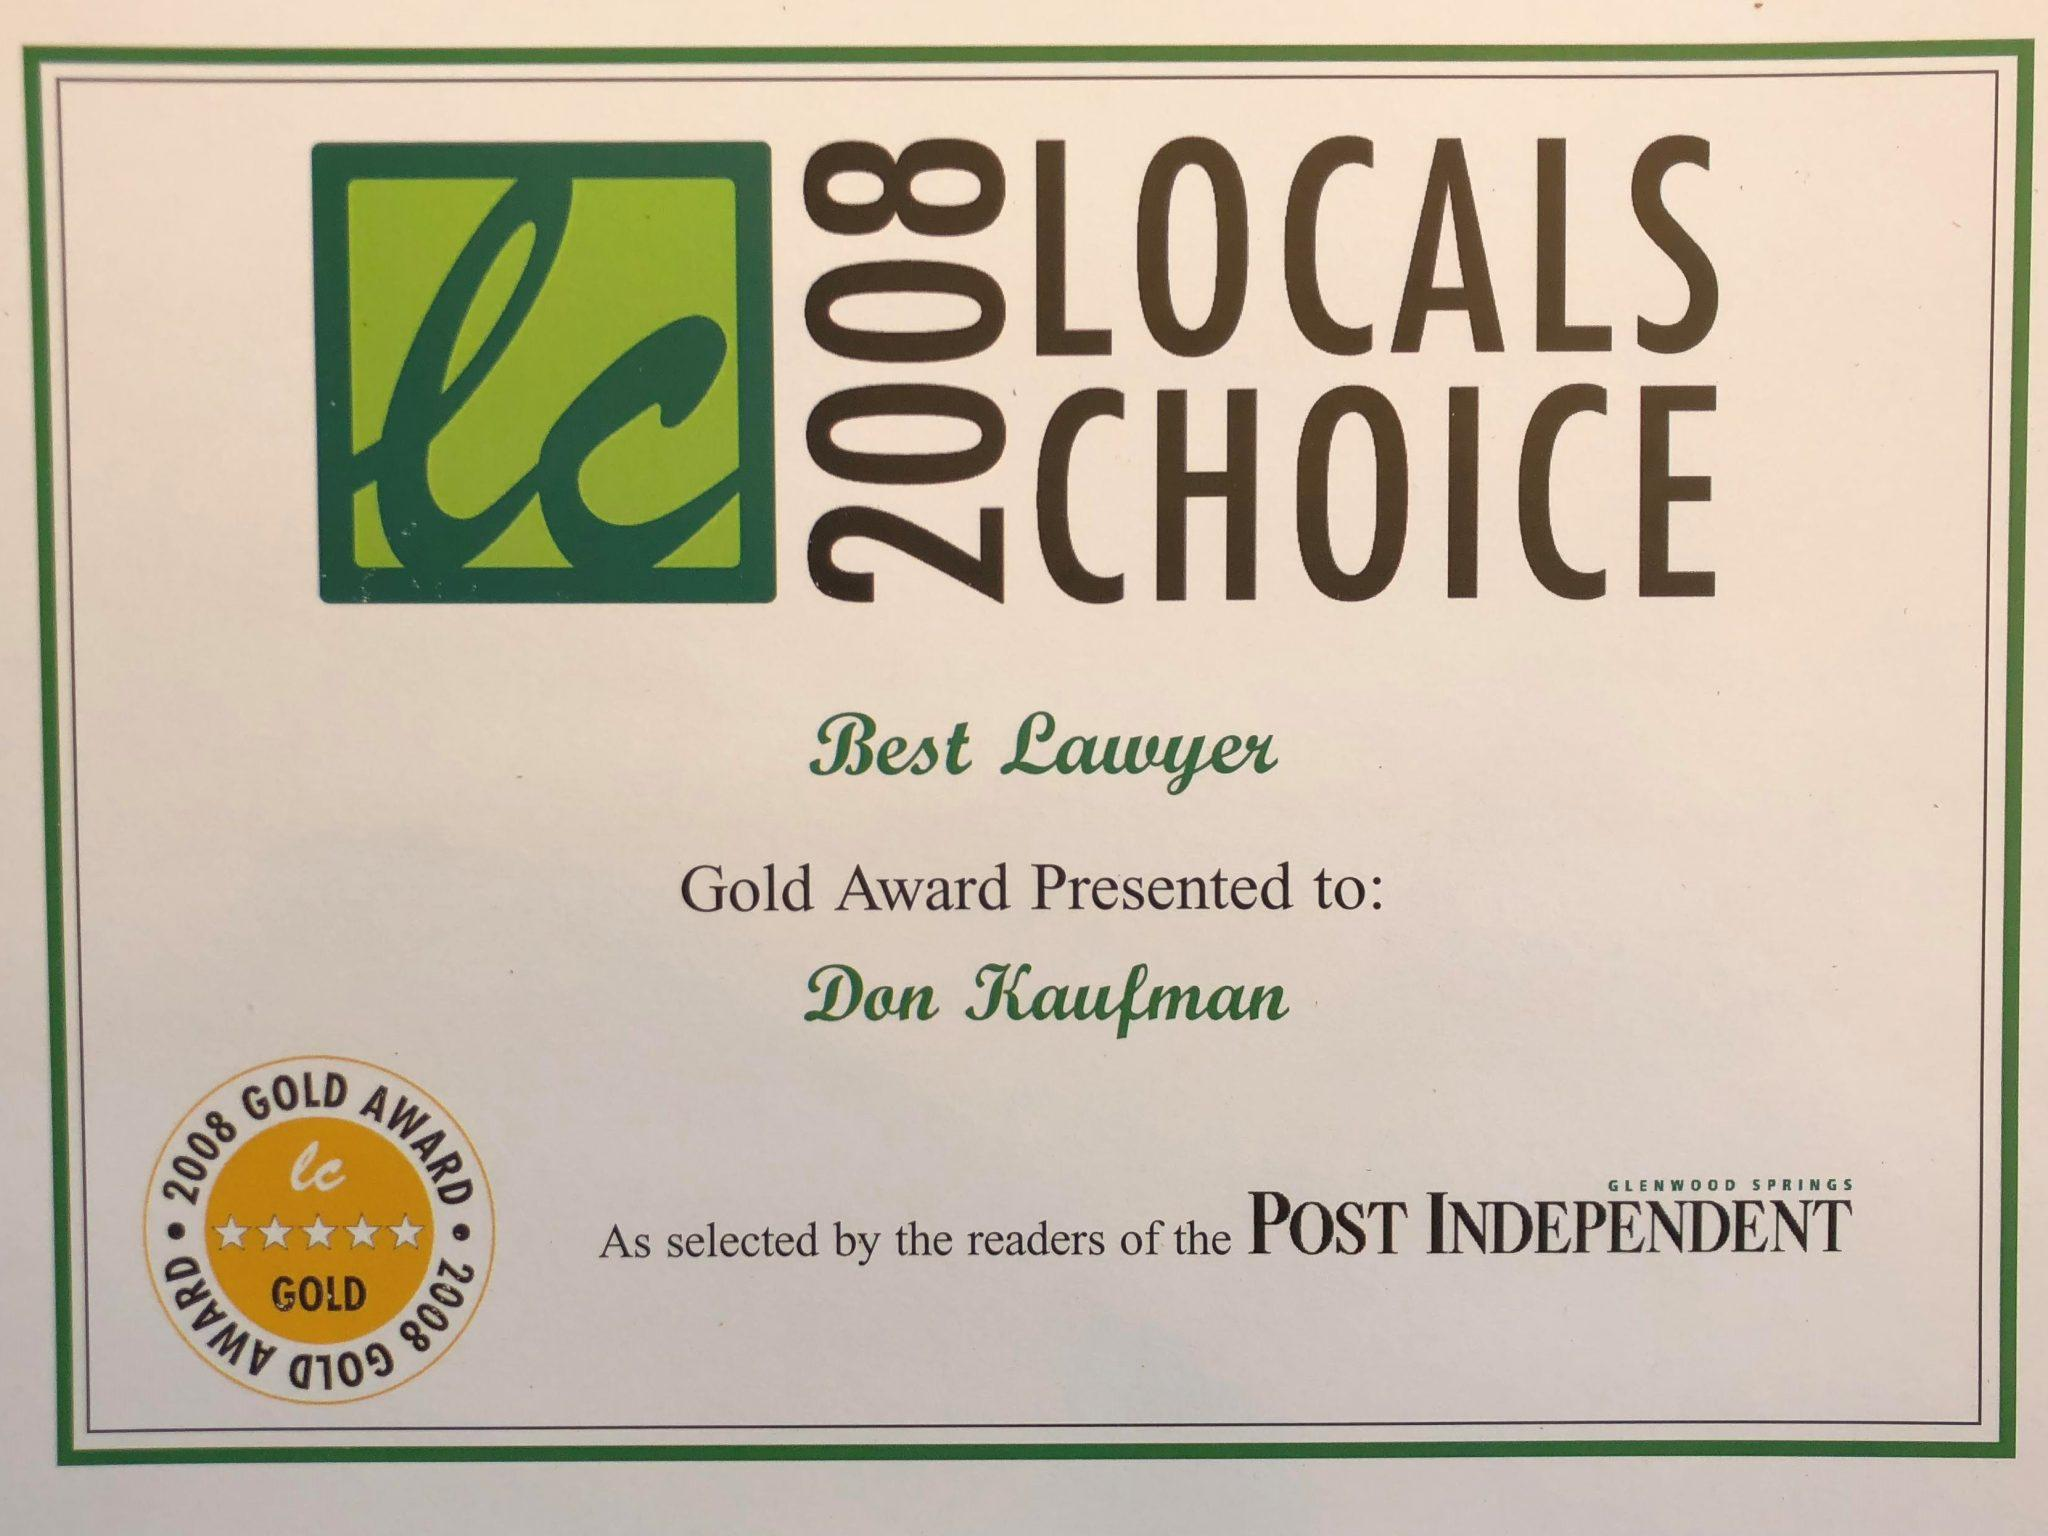 Don Kaufman wins 2008 Locals Choice Award